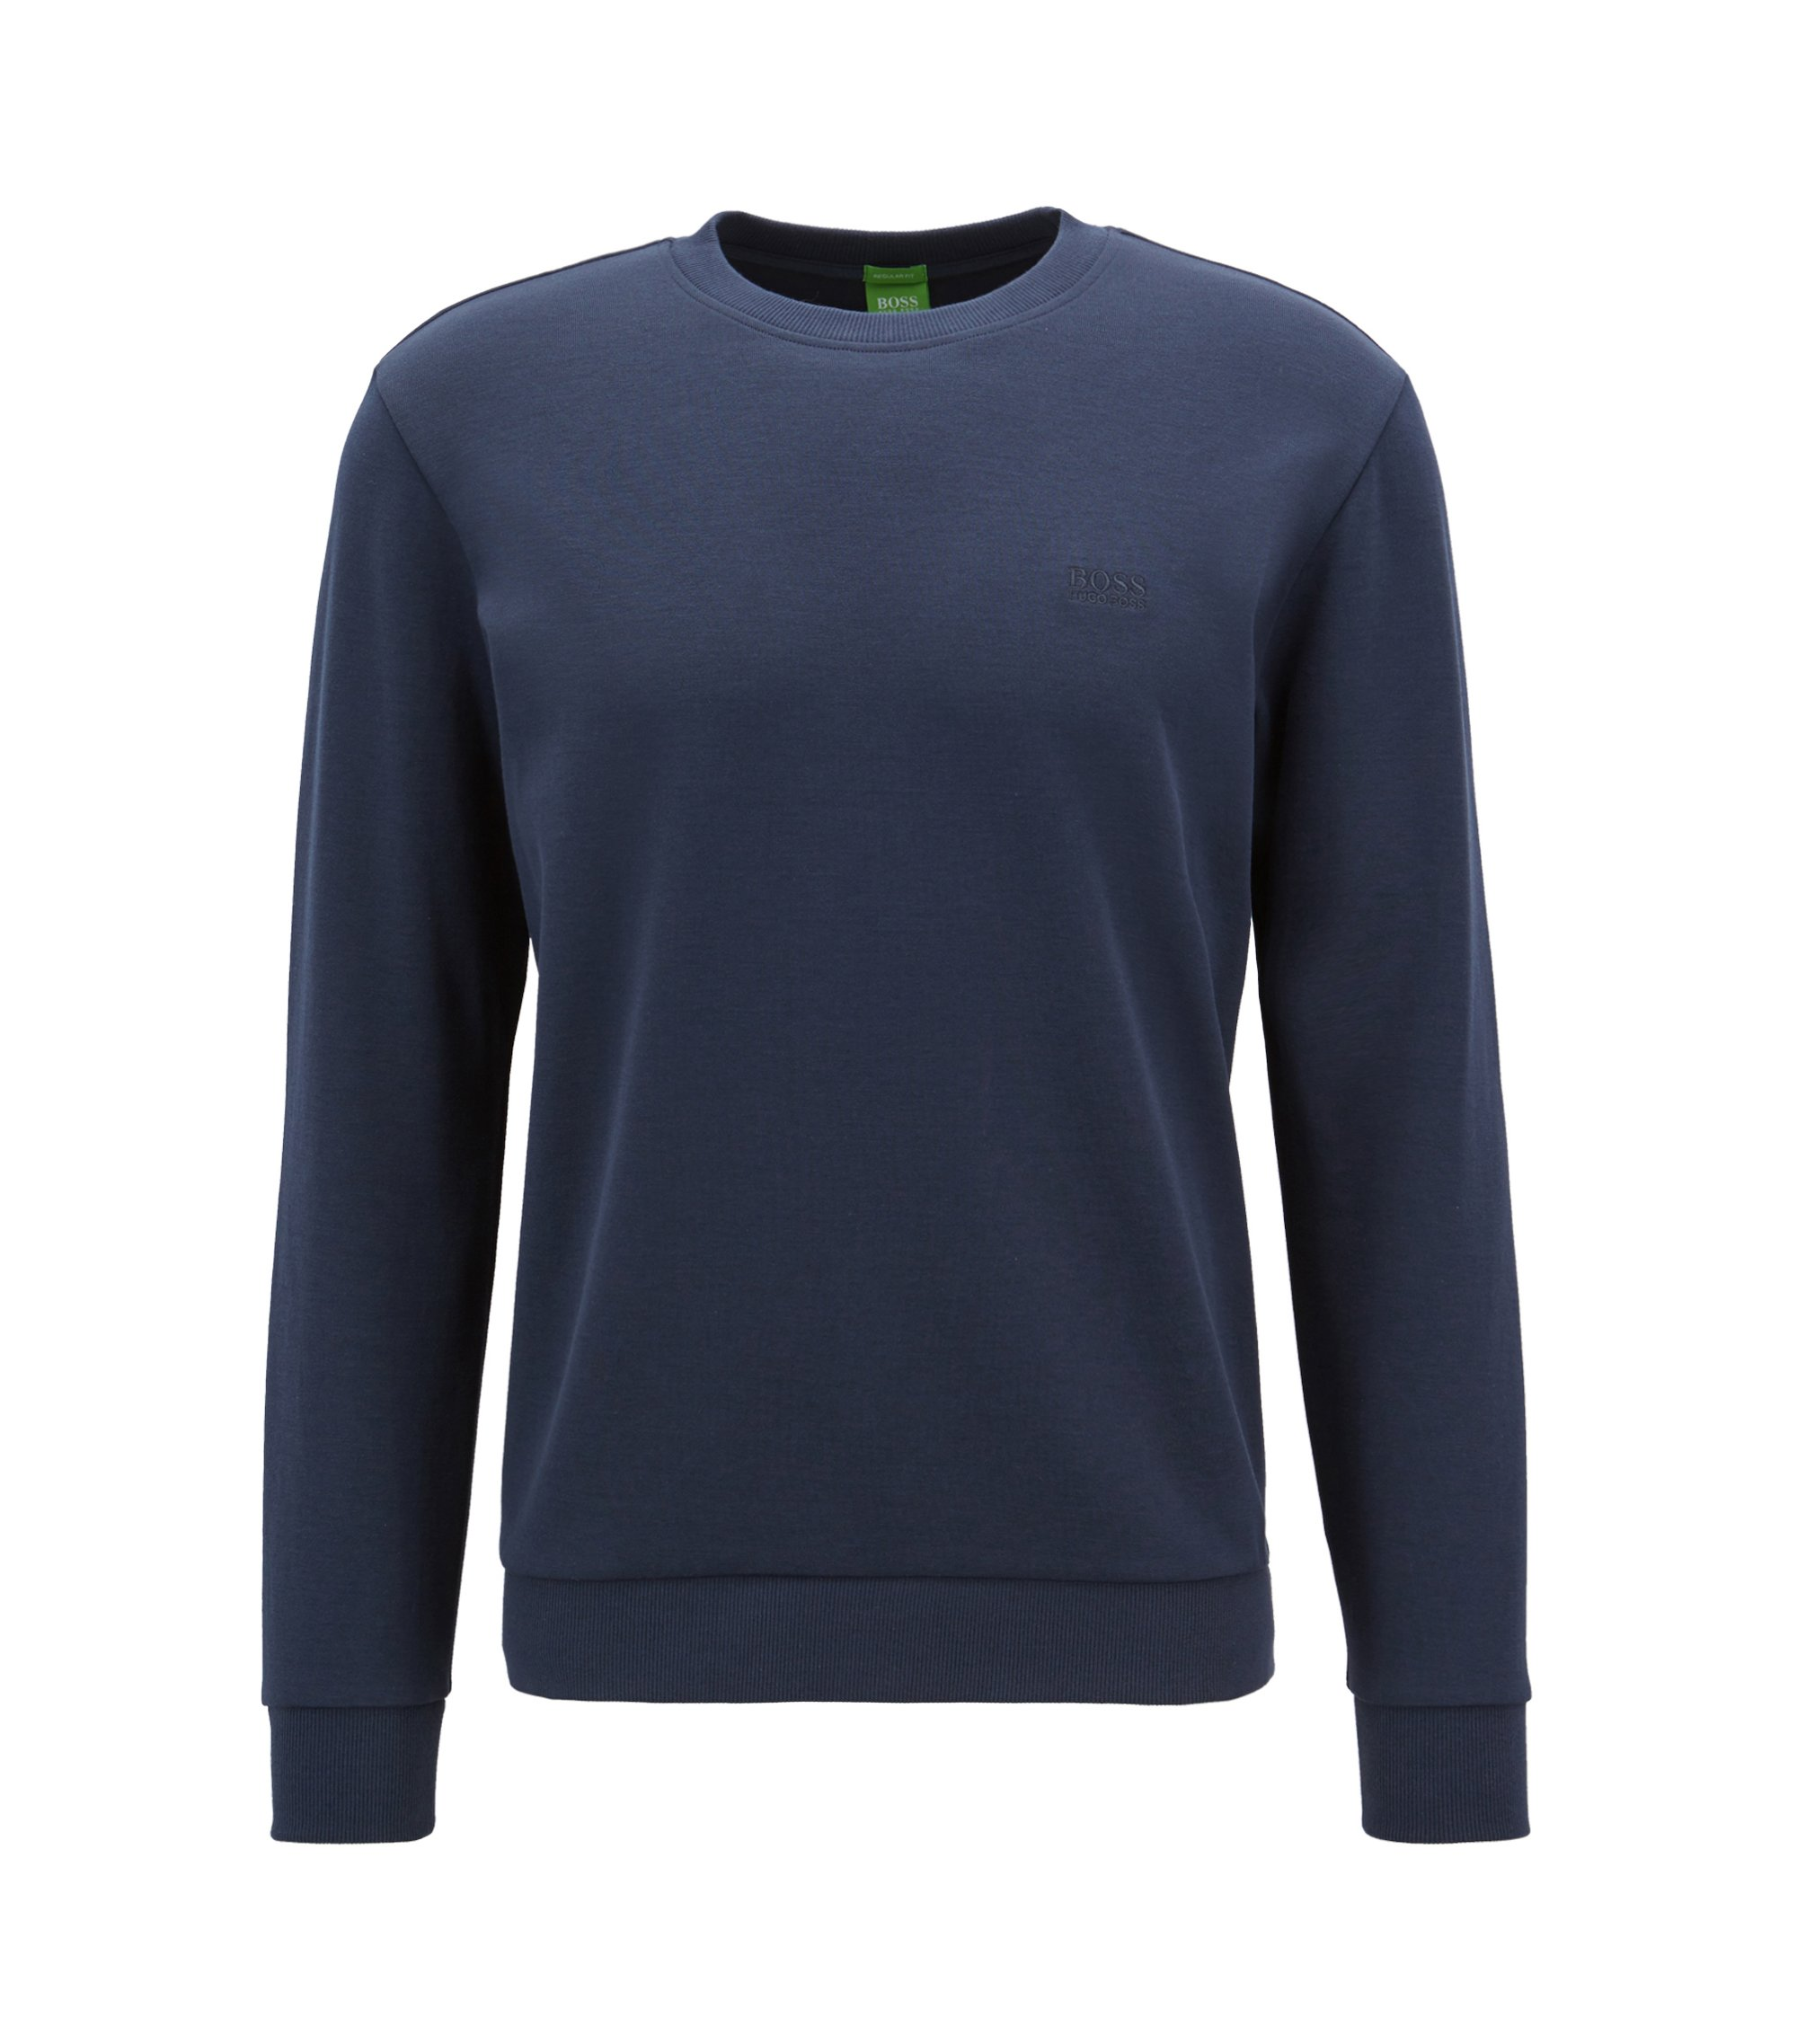 Crew-neck sweatshirt with logo embroidery, Dark Blue